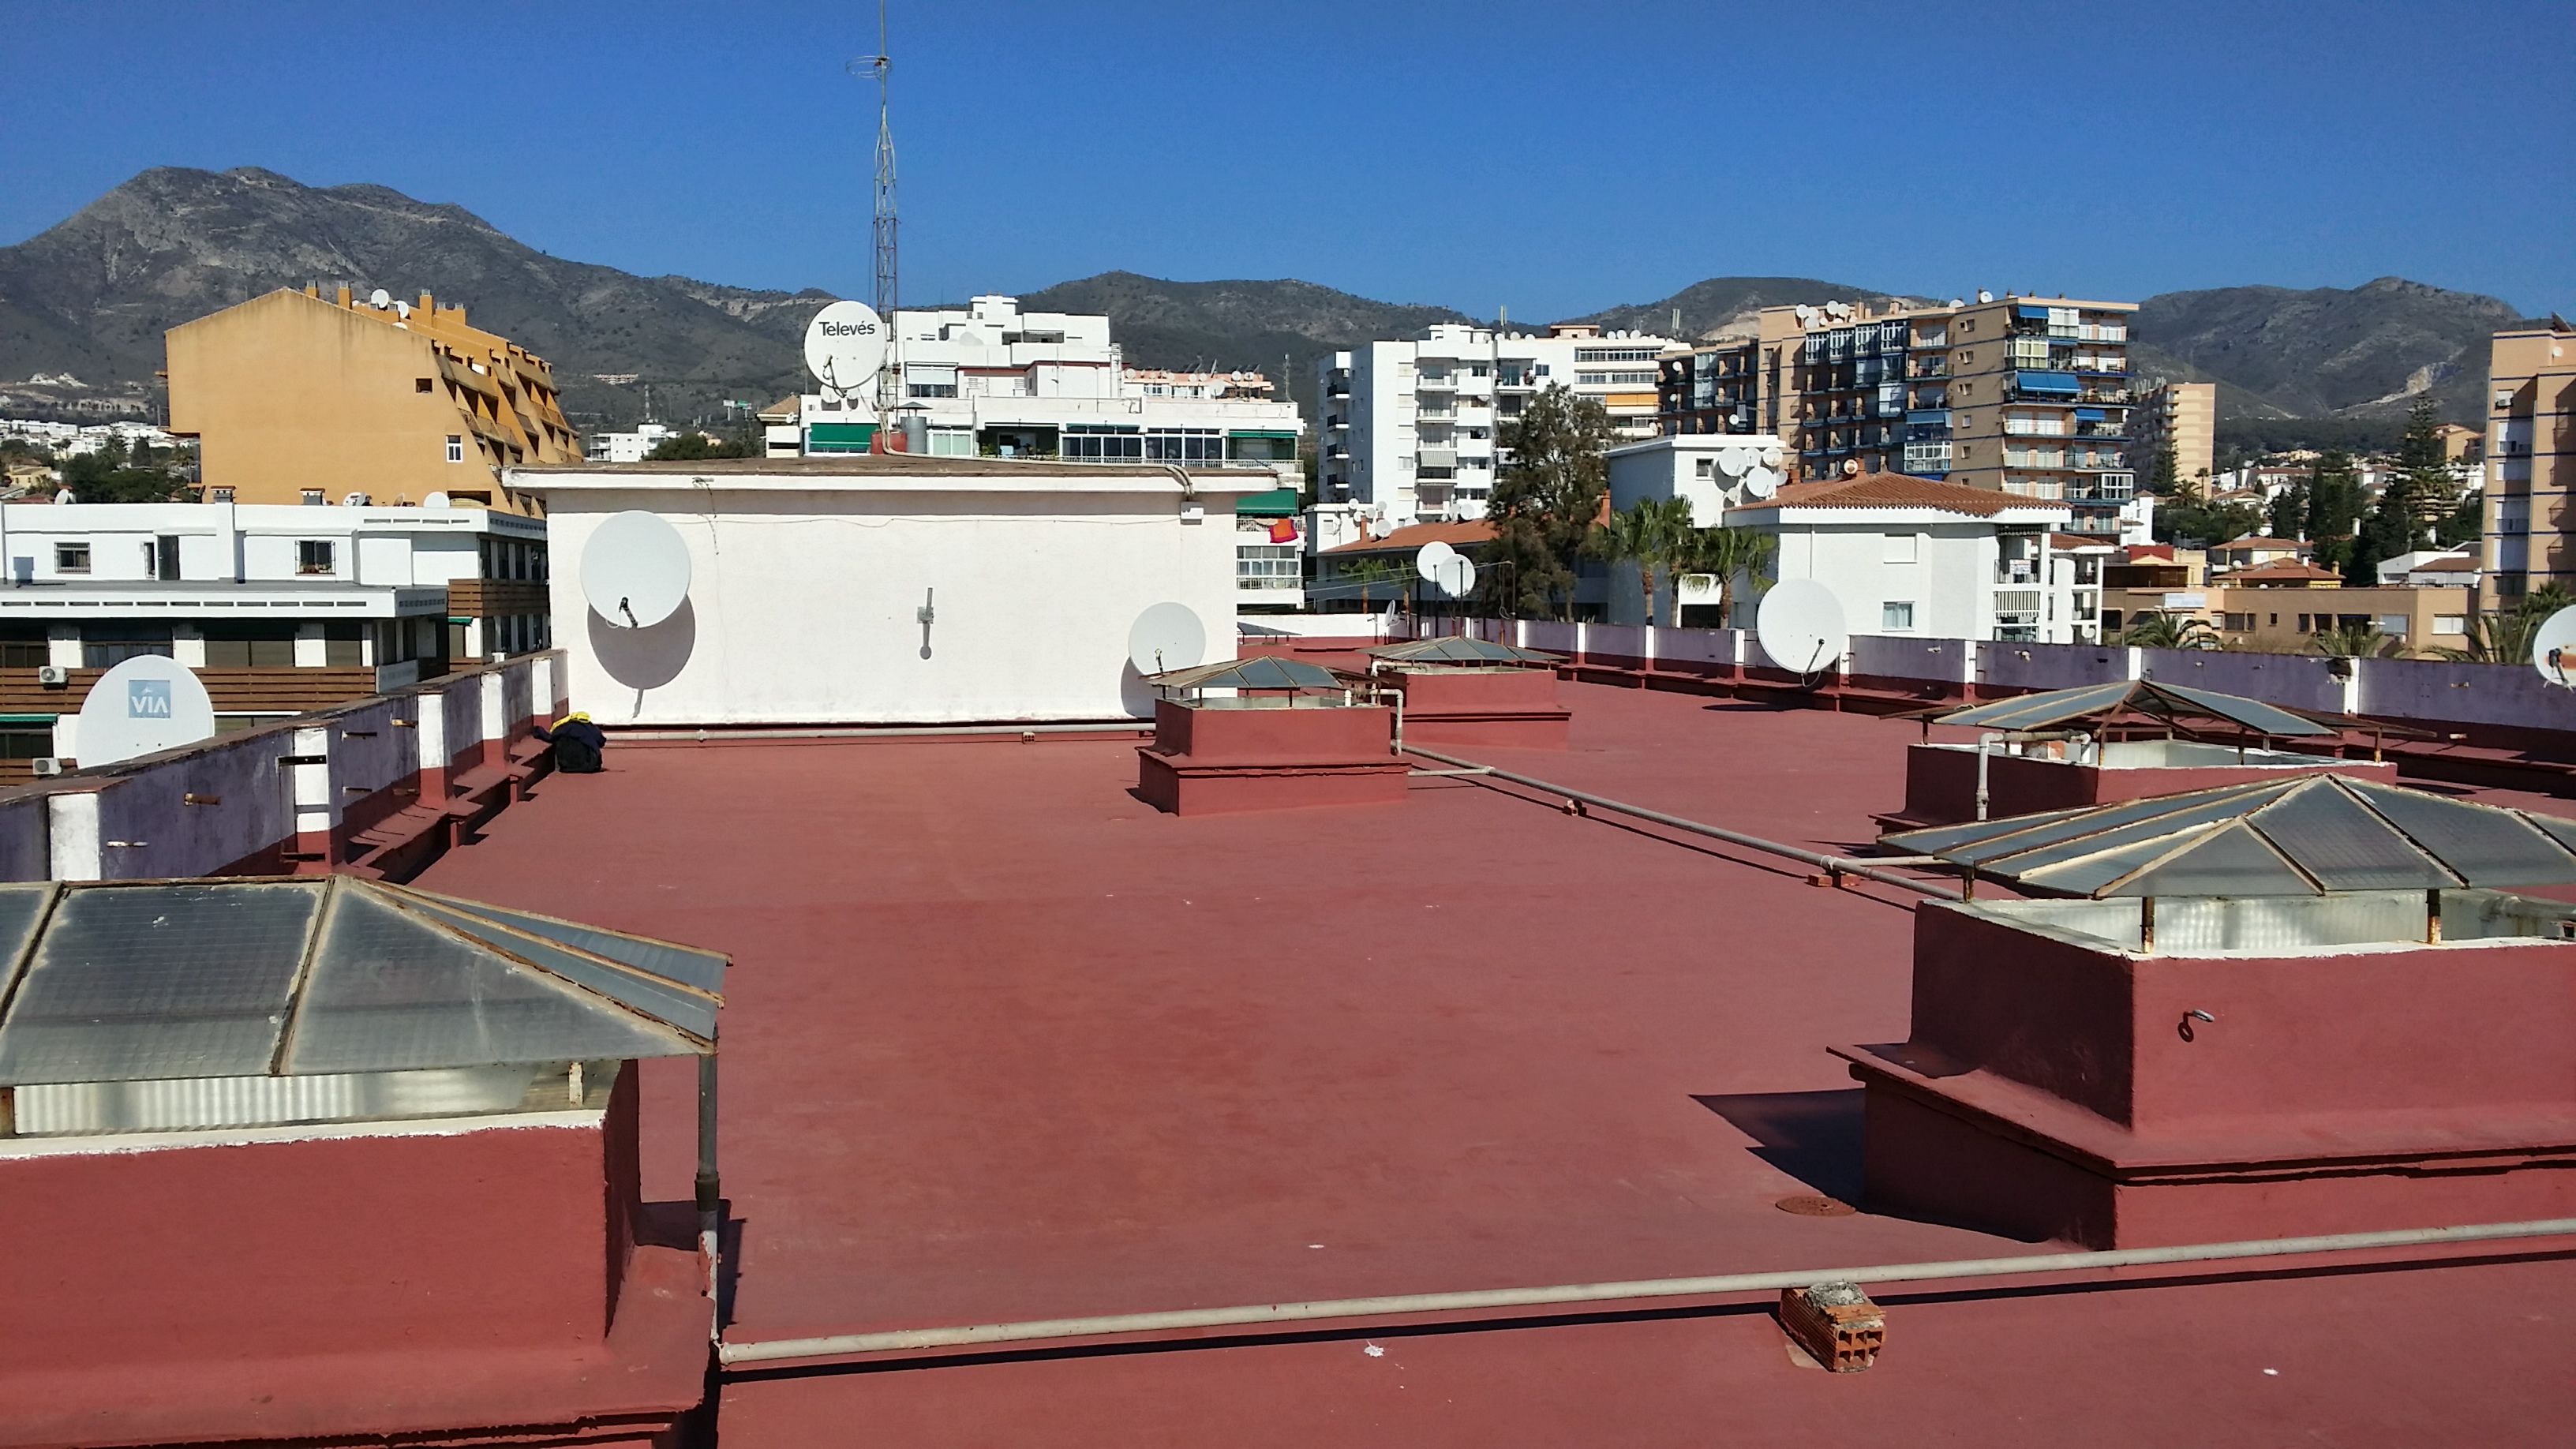 We train at the rooftop.